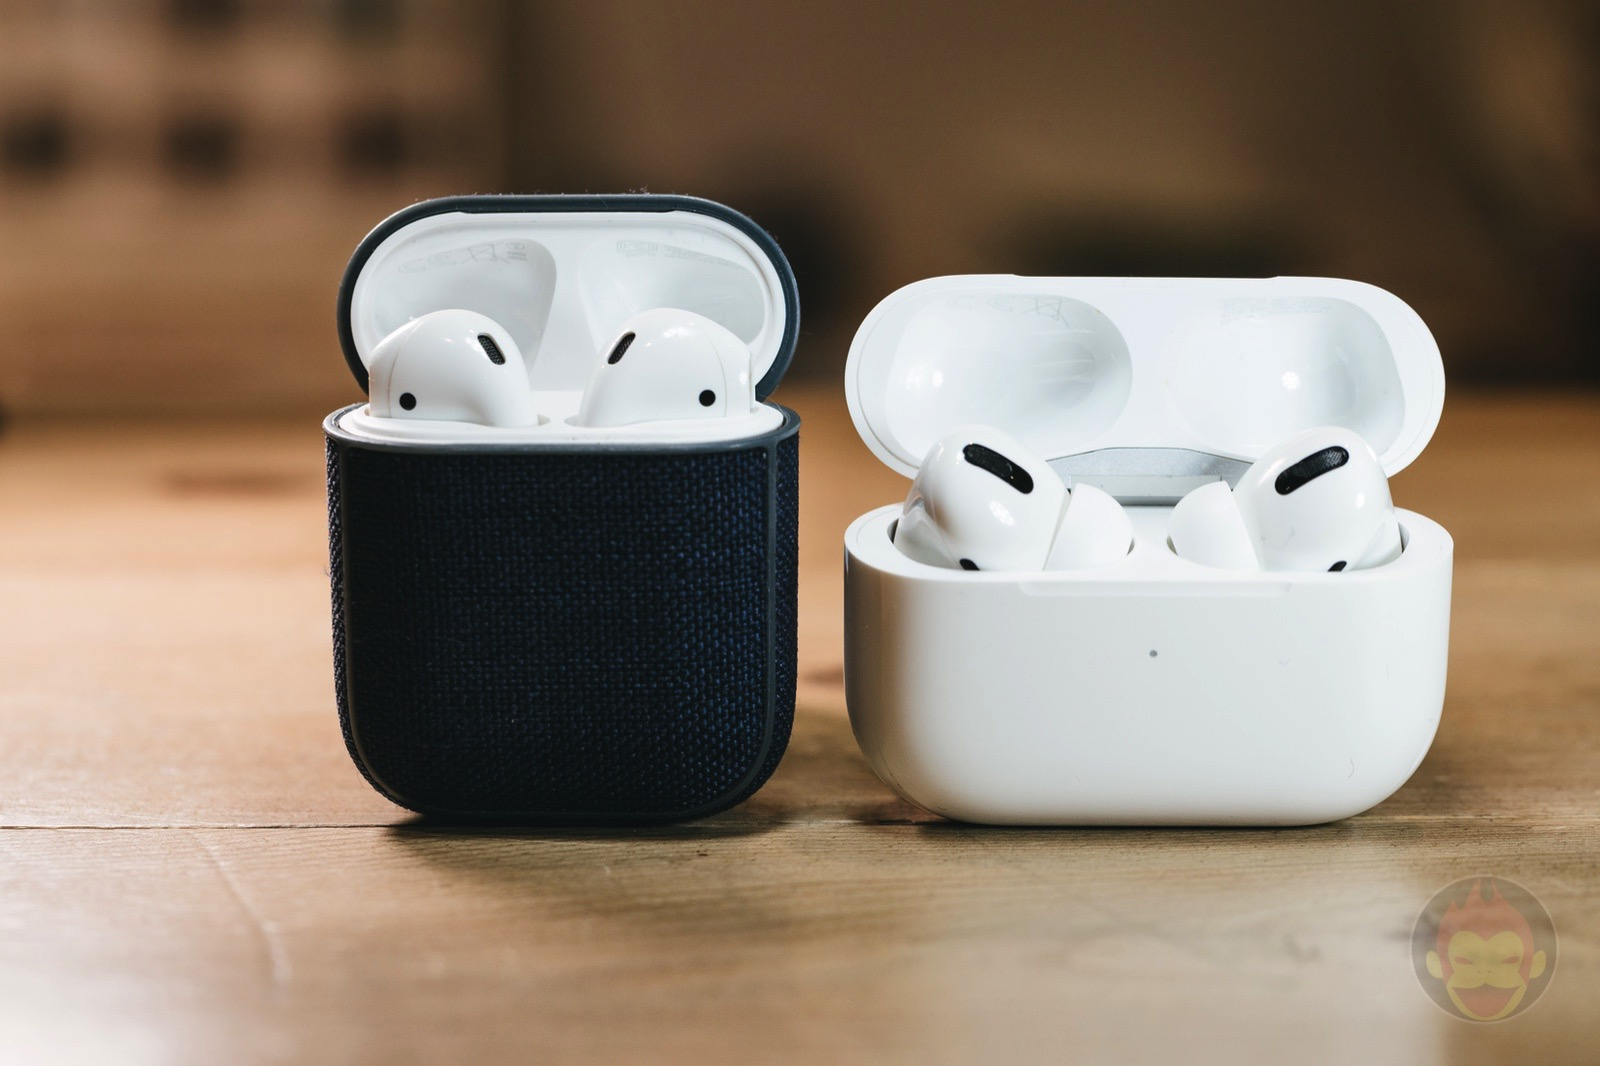 AirPods2-and-AirPodsPro-01.jpg